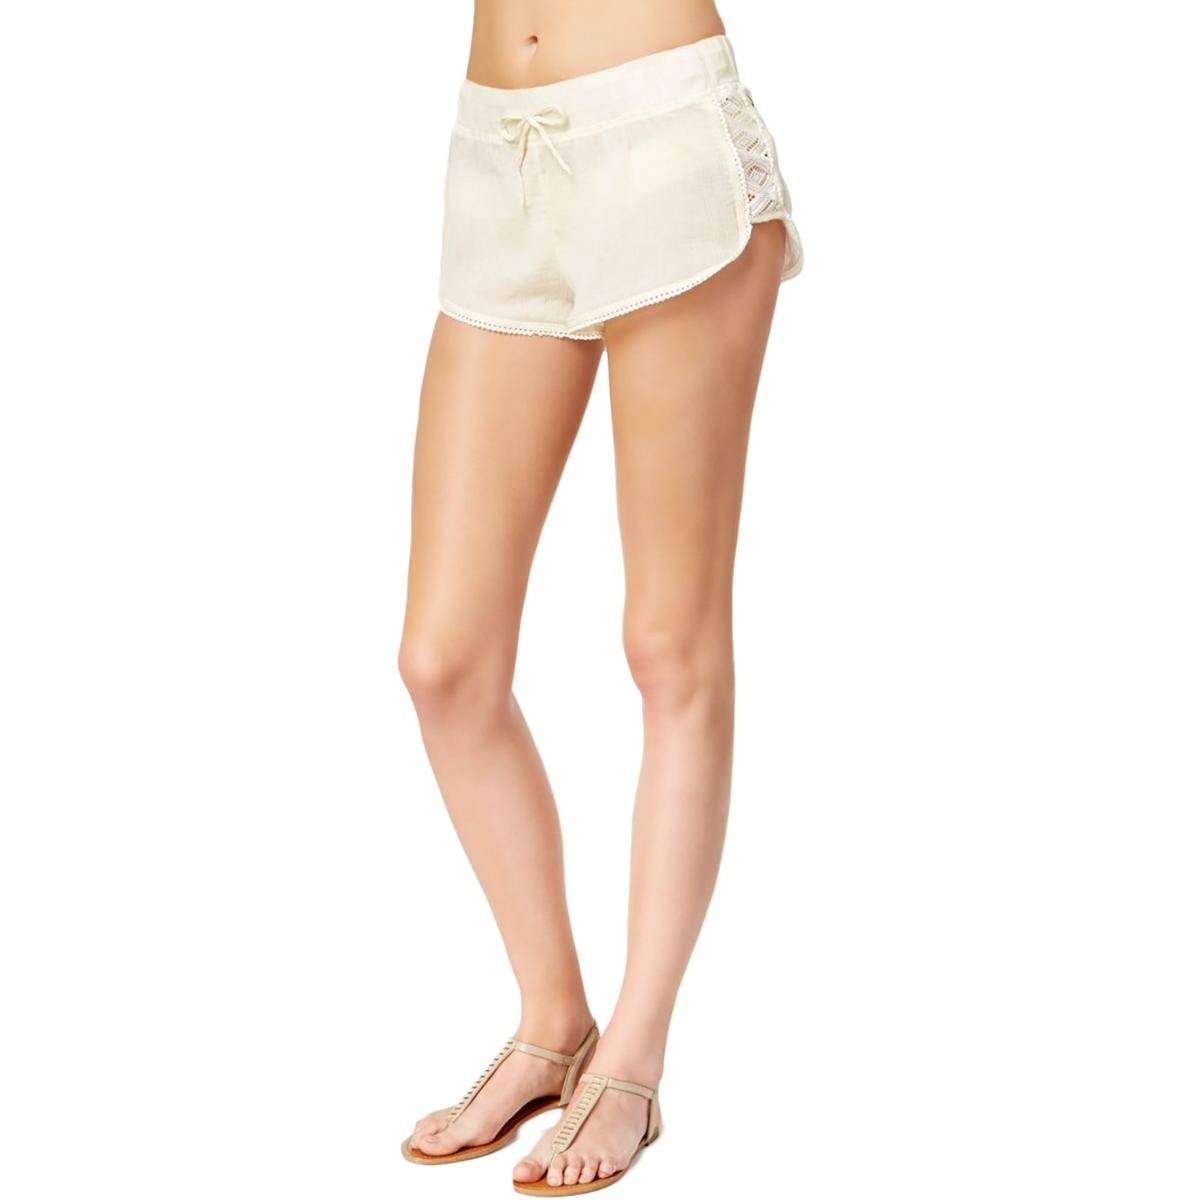 2cecb3ffcd02a Shop Roxy Womens Gauze Crochet Trim Shorts Swim Cover-Up - XL - Free  Shipping On Orders Over $45 - Overstock - 17269638